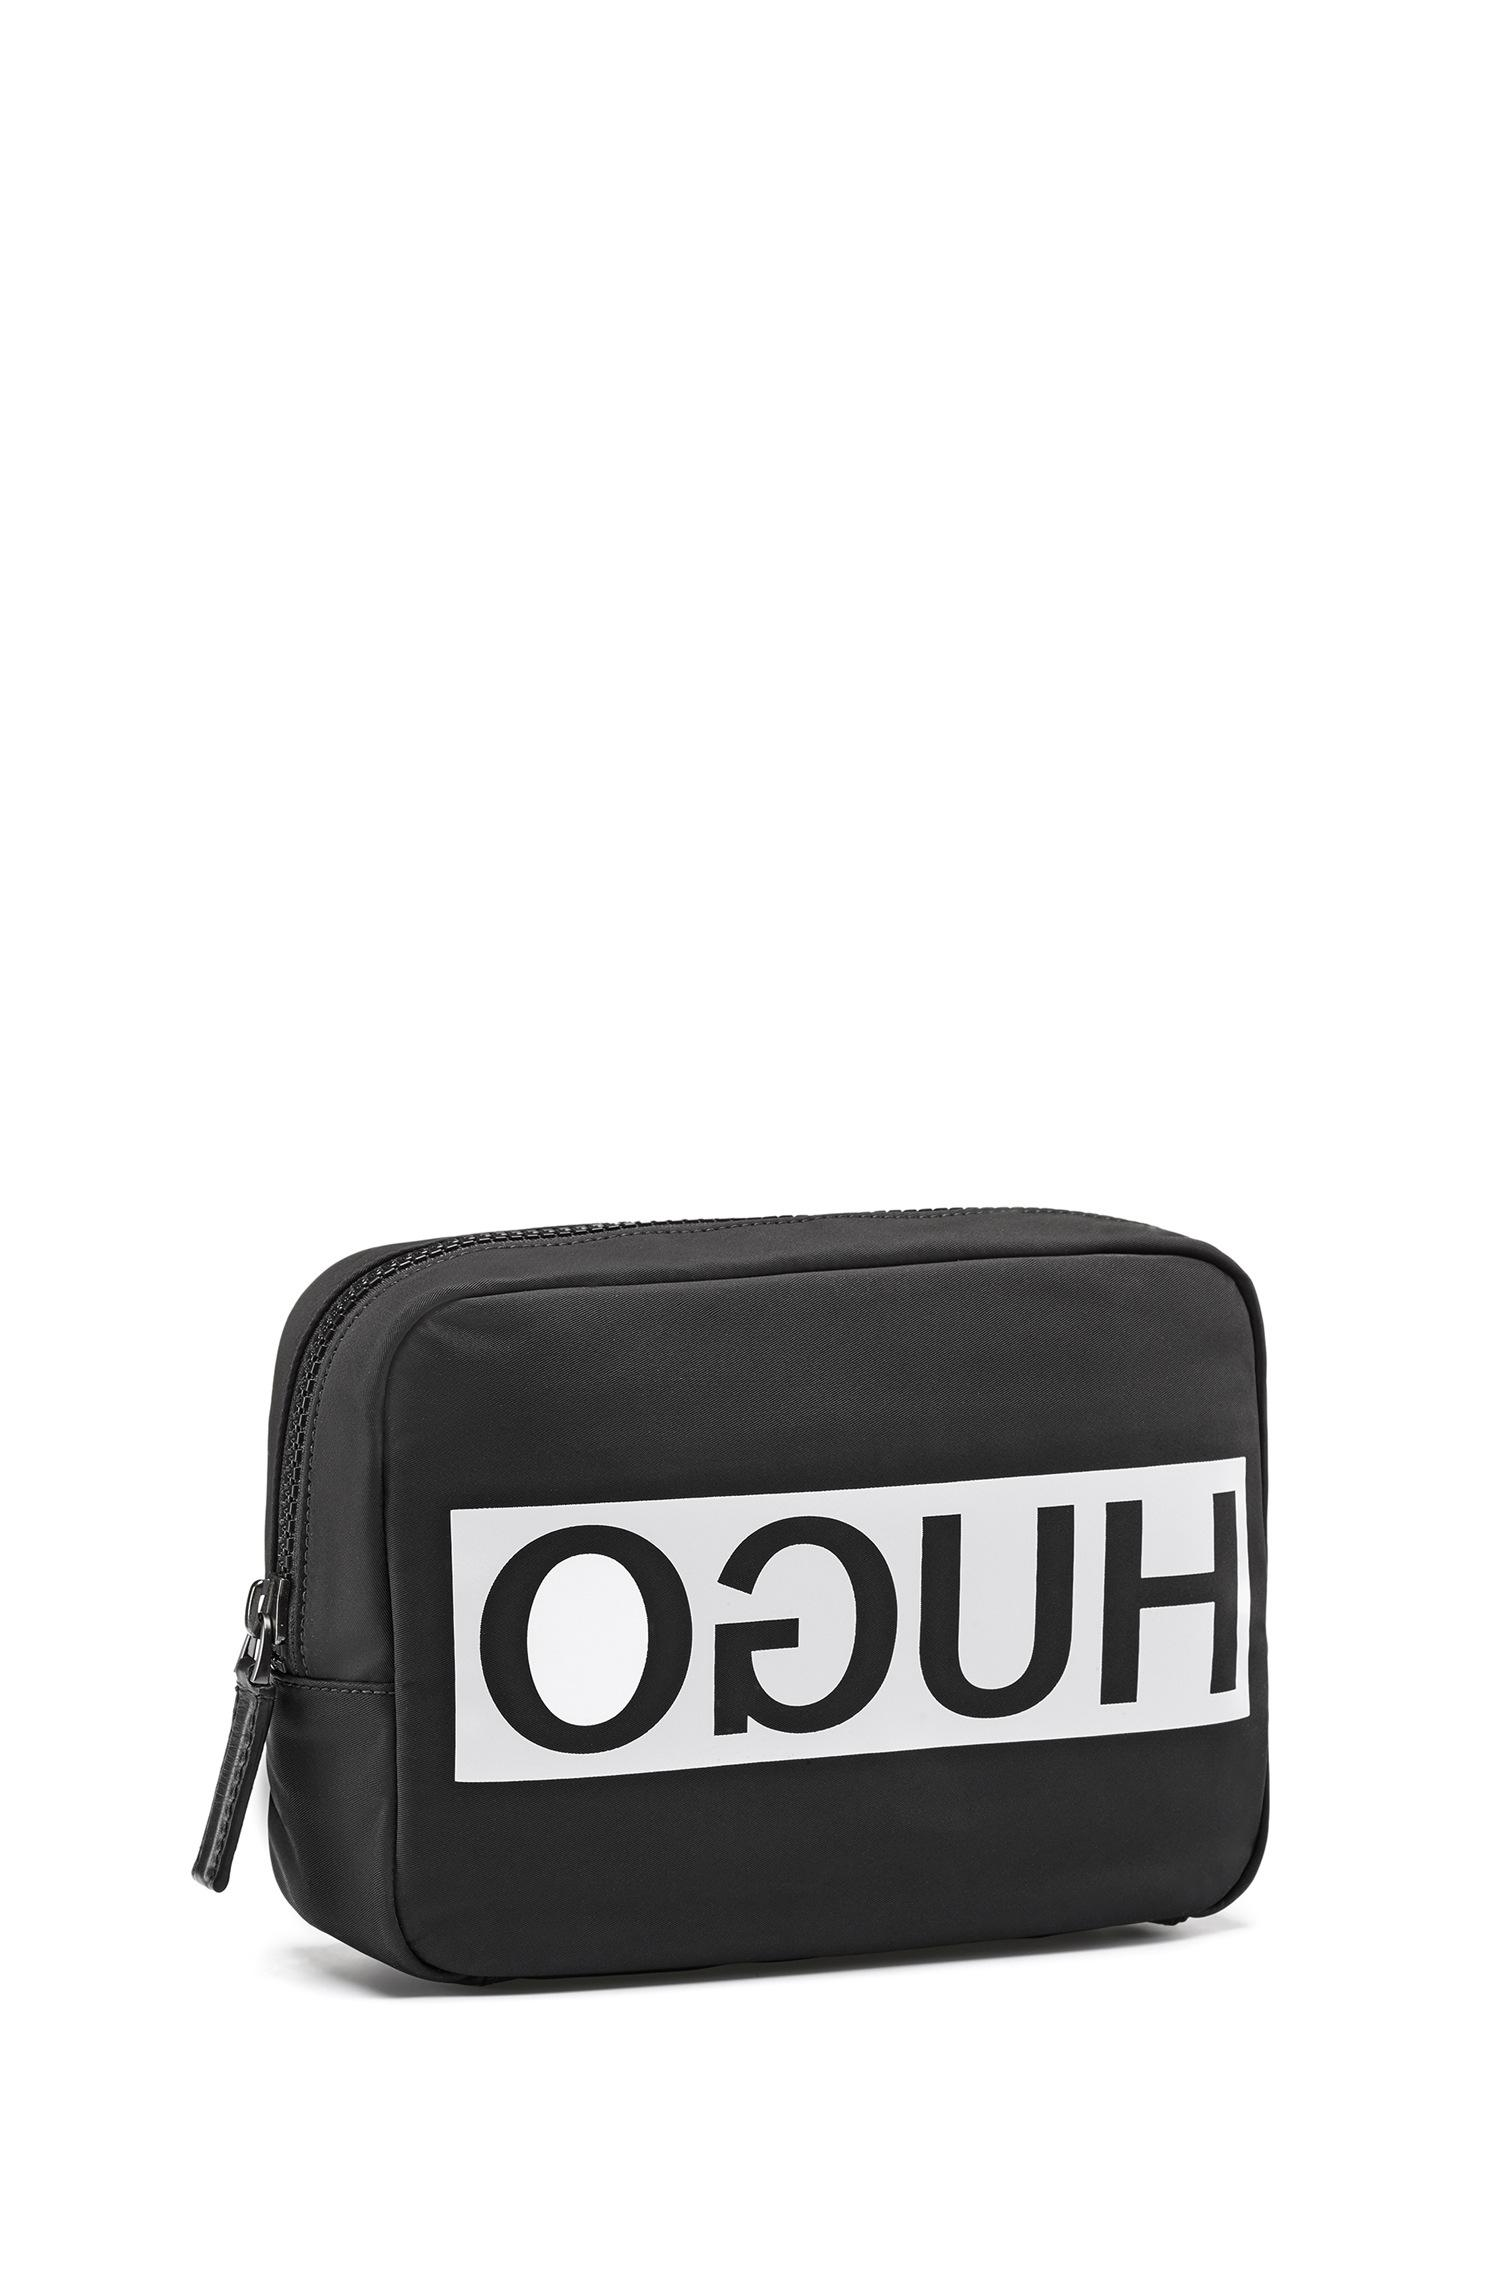 Lyst - HUGO Nylon Toiletry Bag  a232a1a1837e2